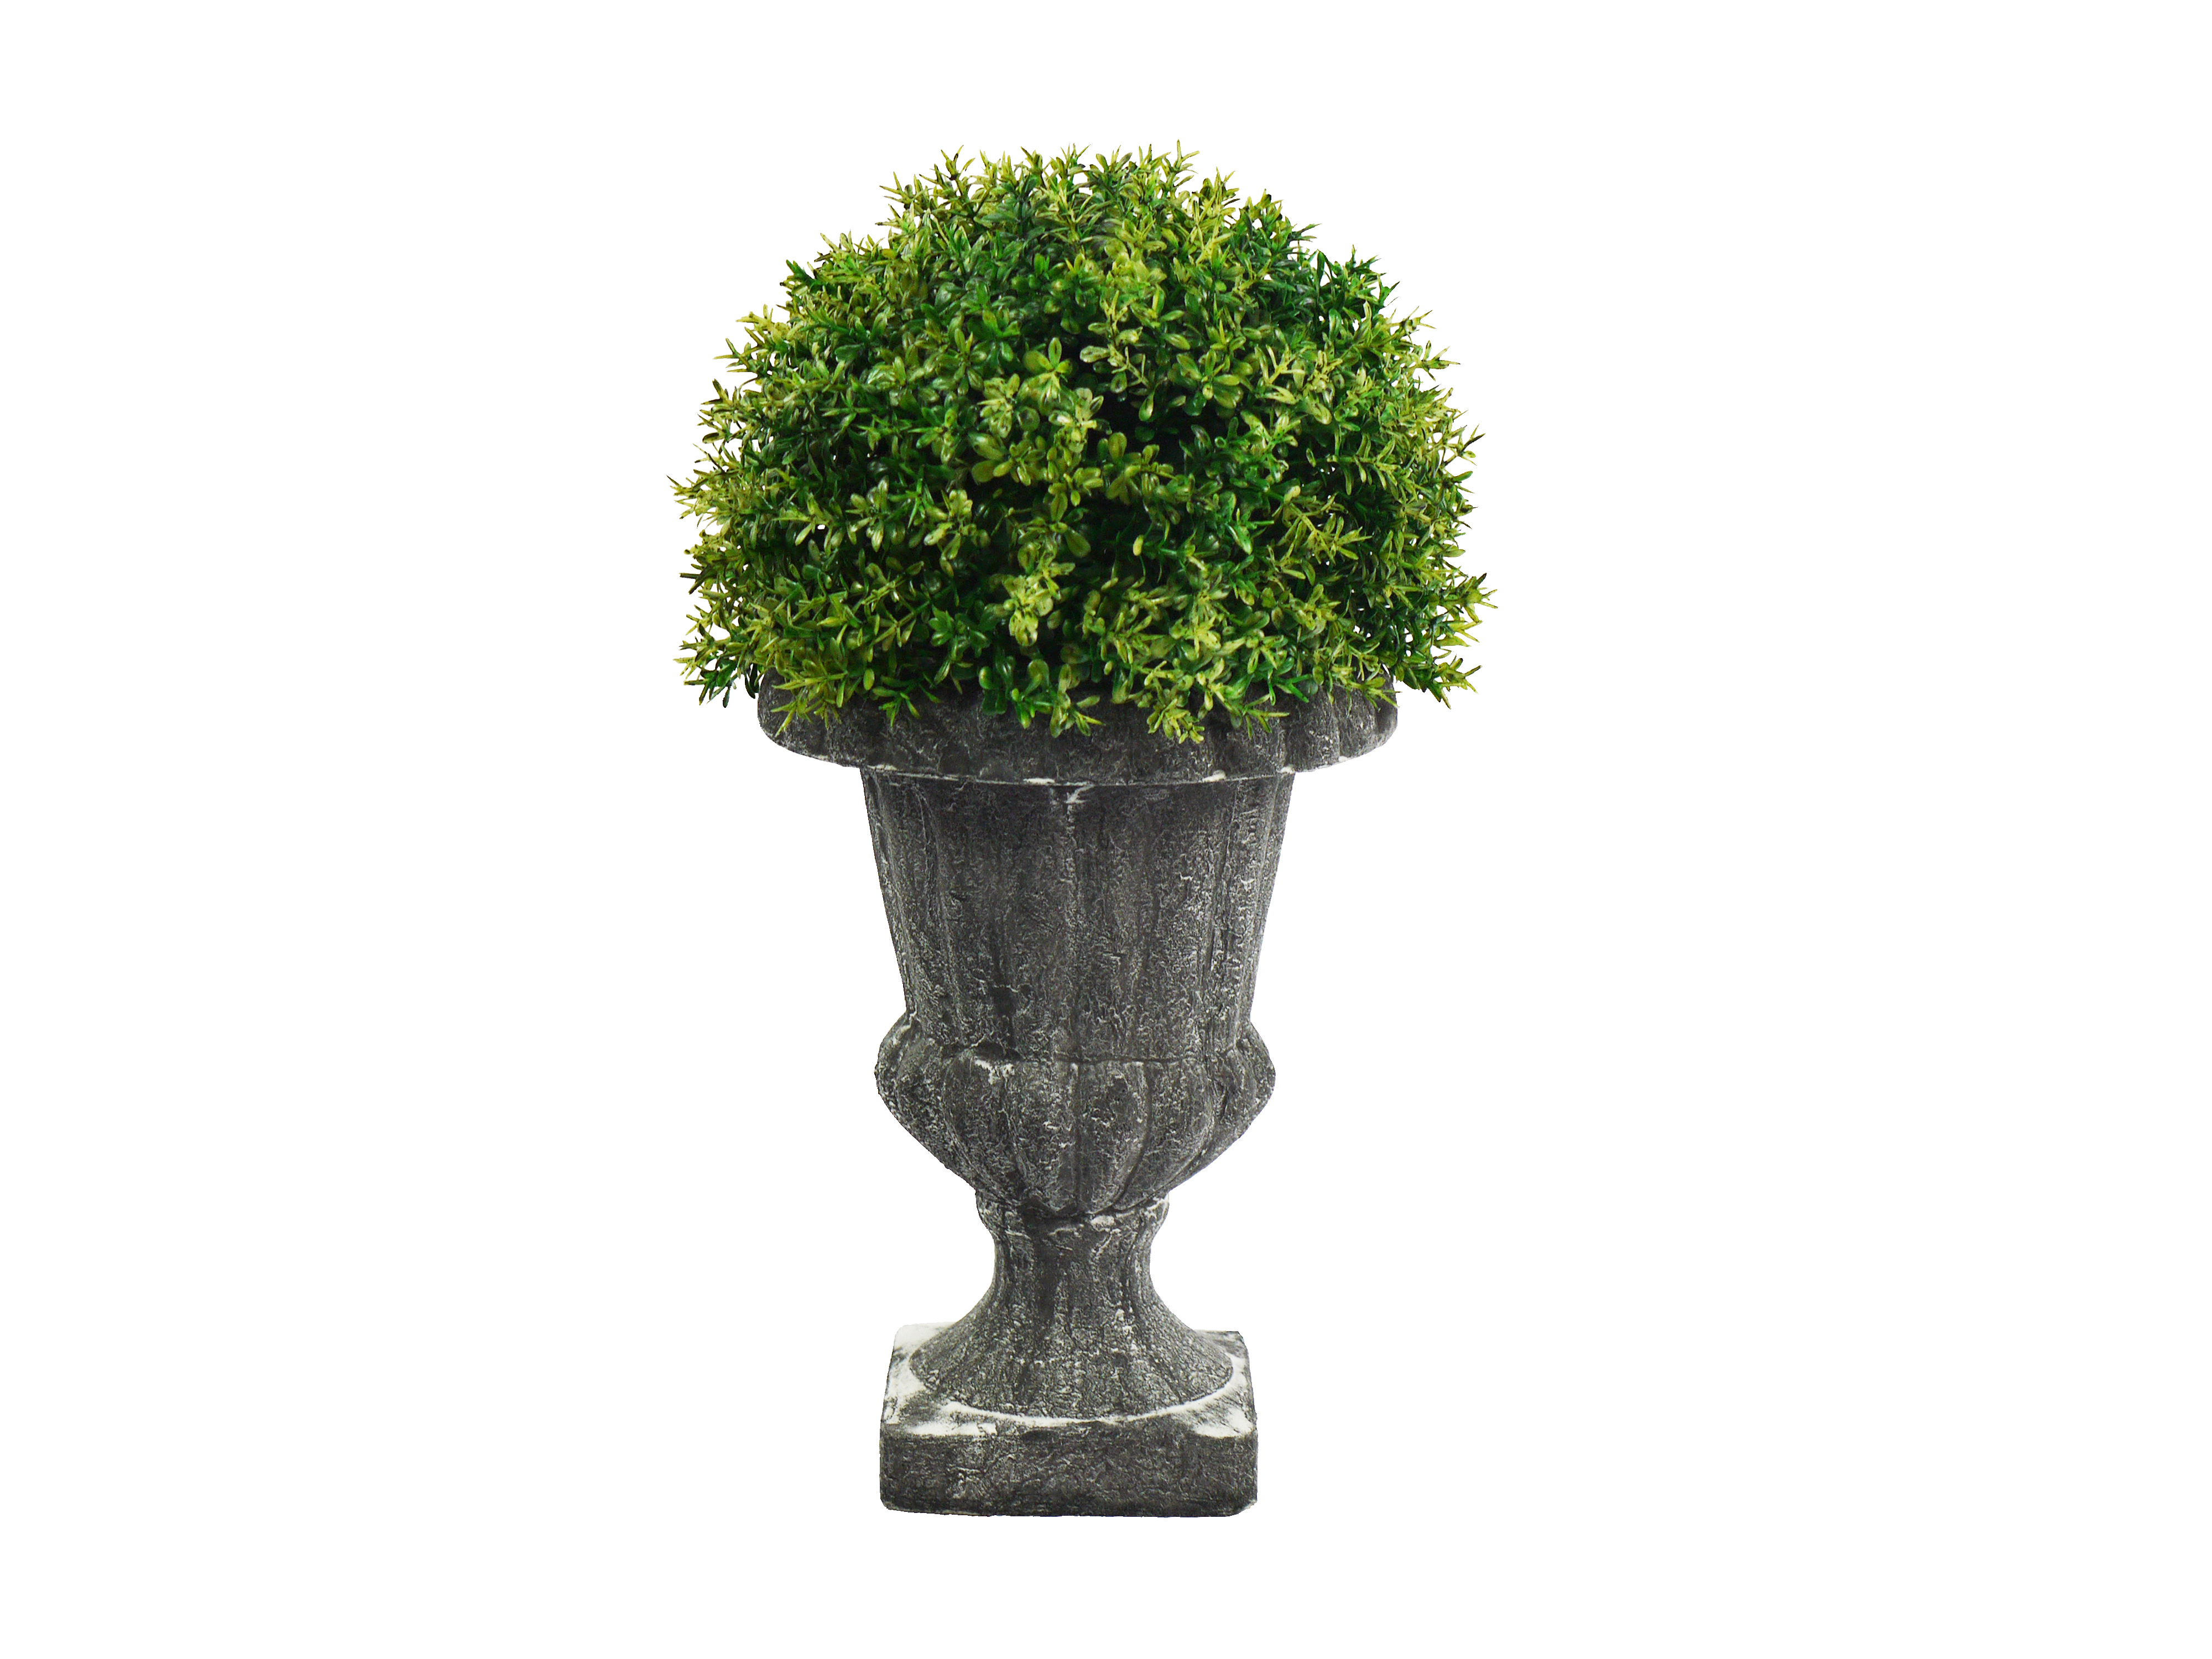 Admired By Nature ABN5P004-NTRL Faux Tyme Topiary with in Urn, Green